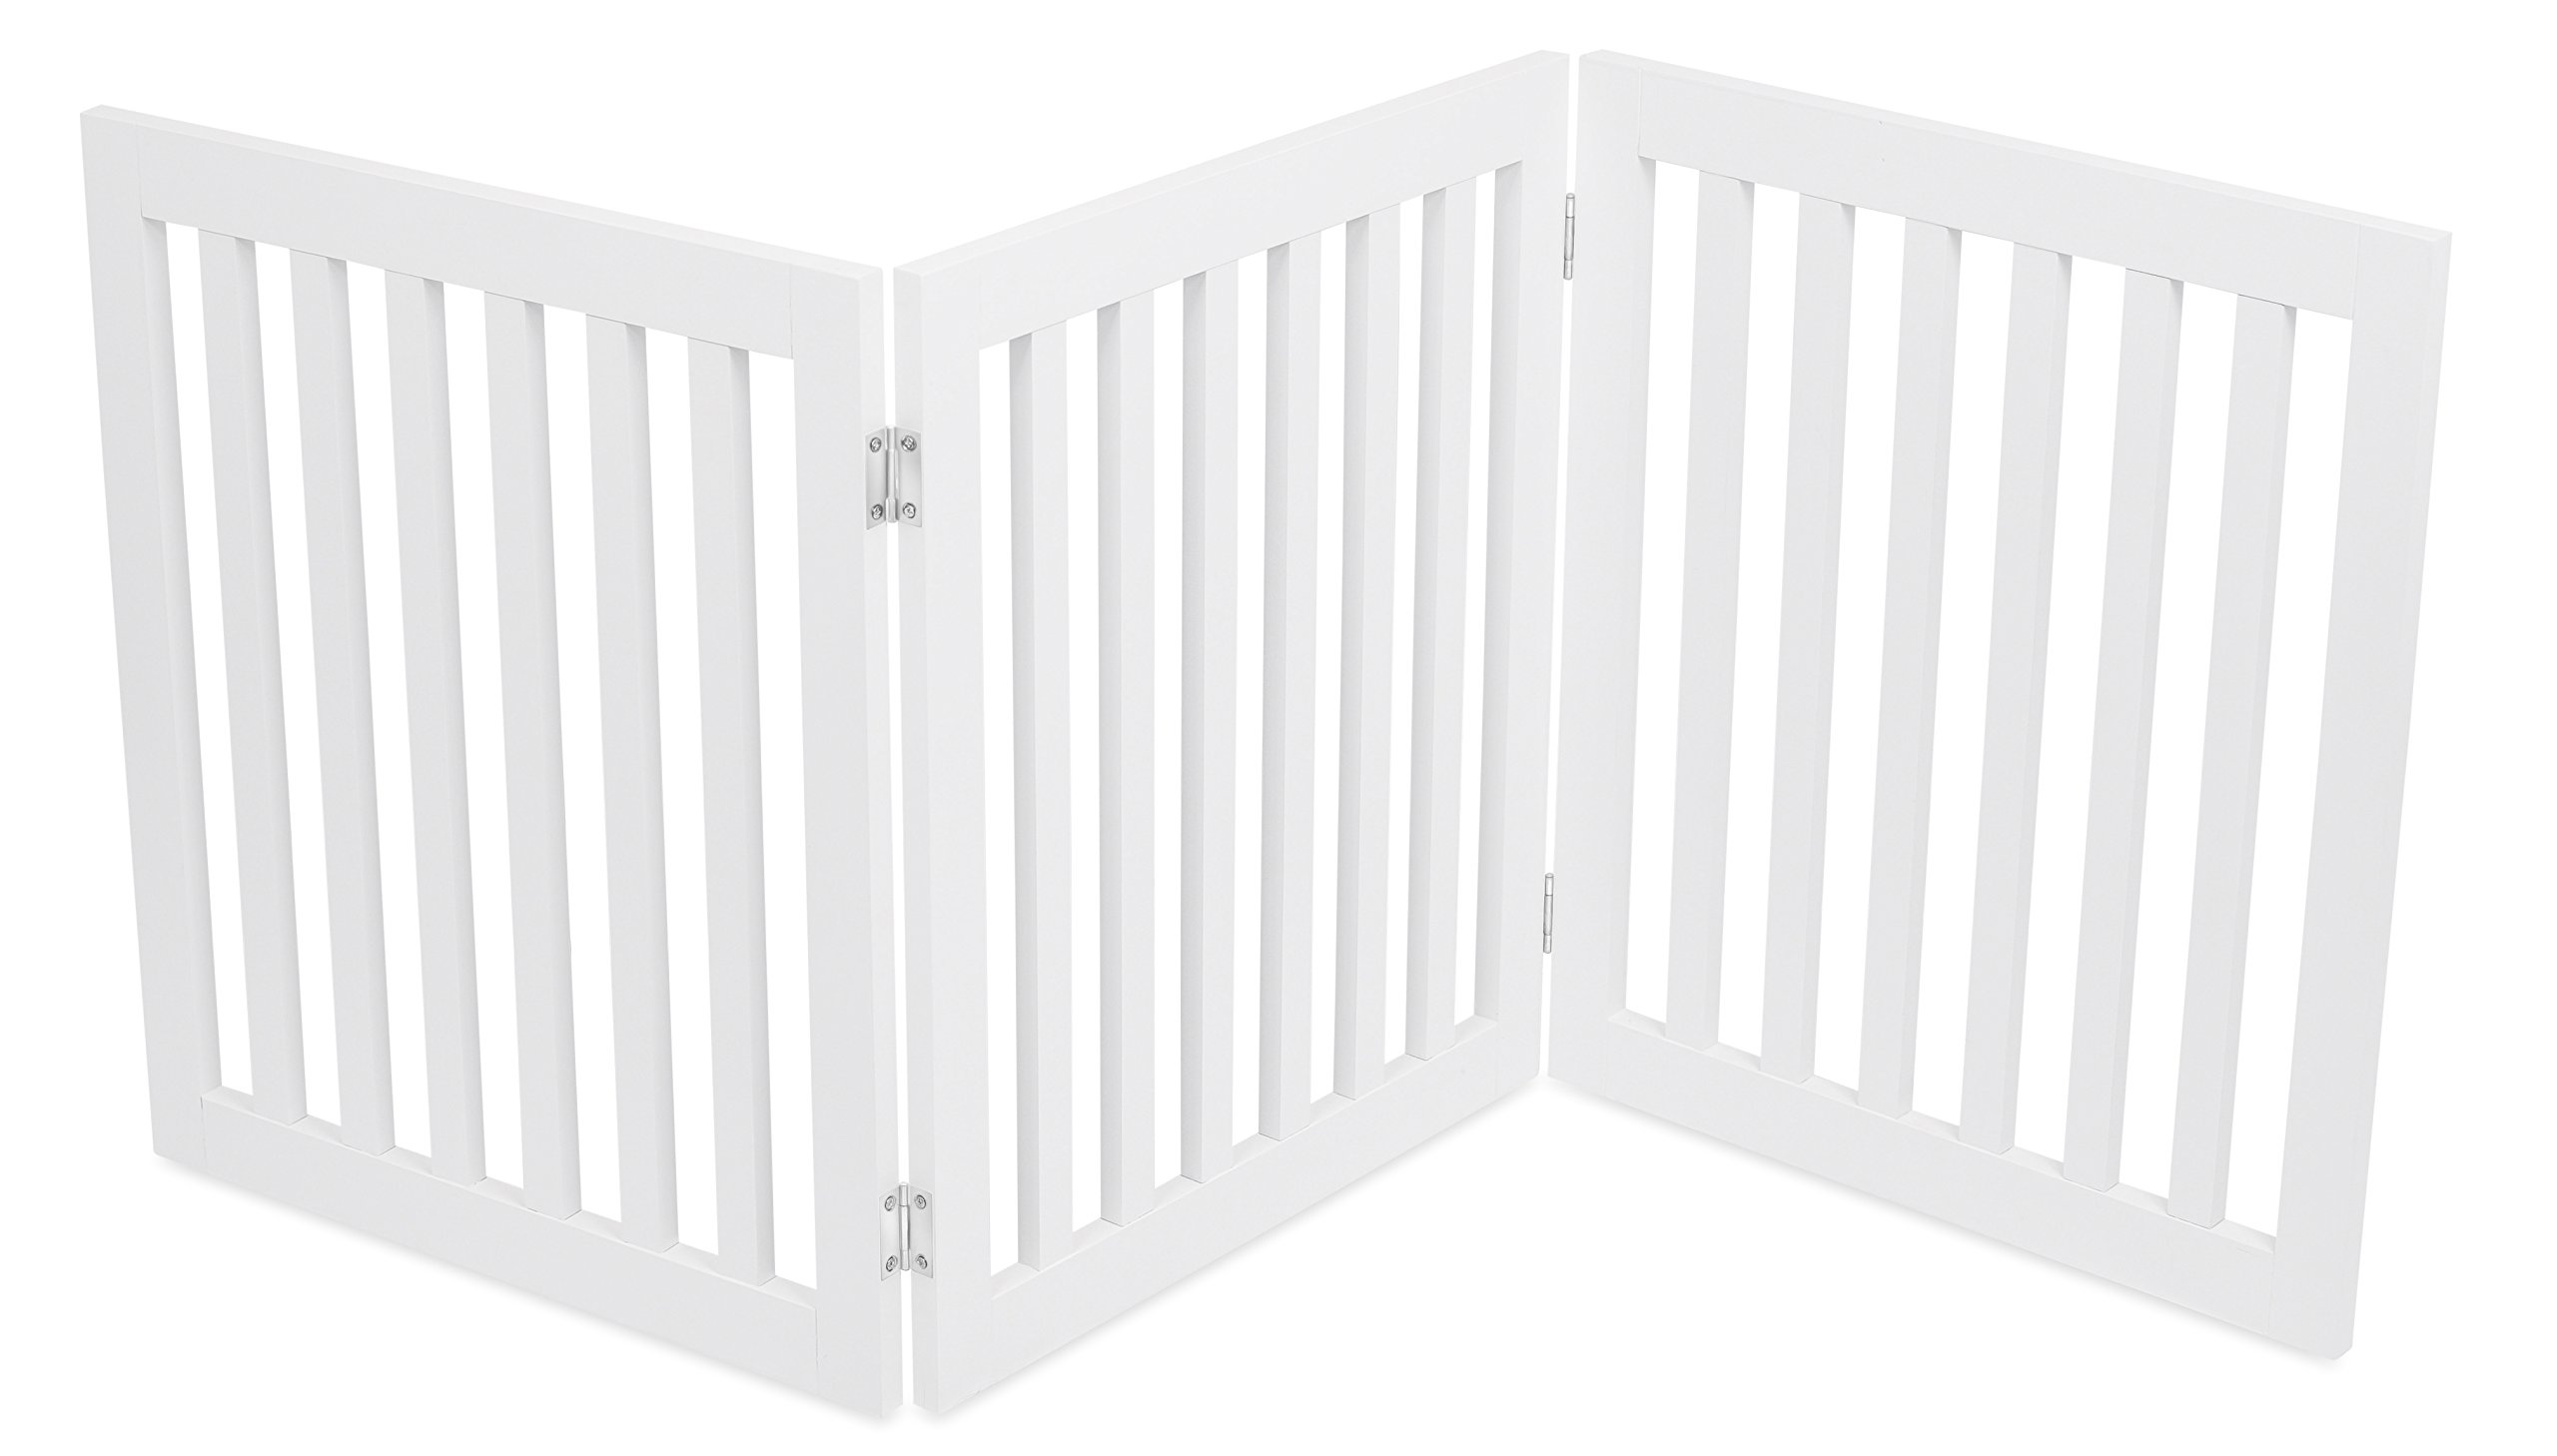 Internet's Best Traditional Pet Gate - 3 Panel - 24 Inch Step Over Fence - Free Standing Folding Z Shape Indoor Doorway Hall Stairs Dog Puppy Gate - White - MDF